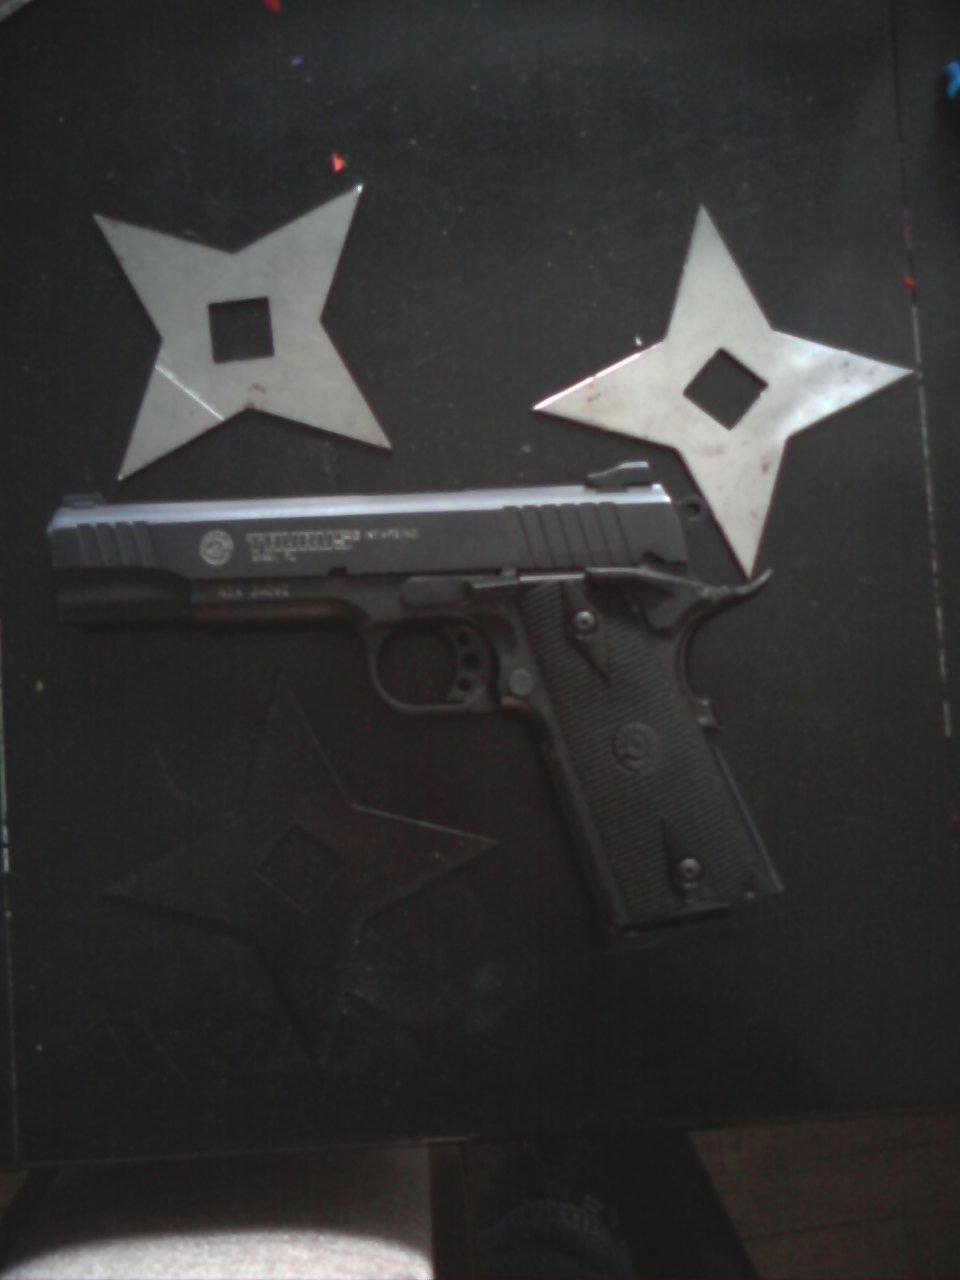 Click image for larger version  Name:Taurus PT1911.jpg Views:211 Size:77.4 KB ID:38116